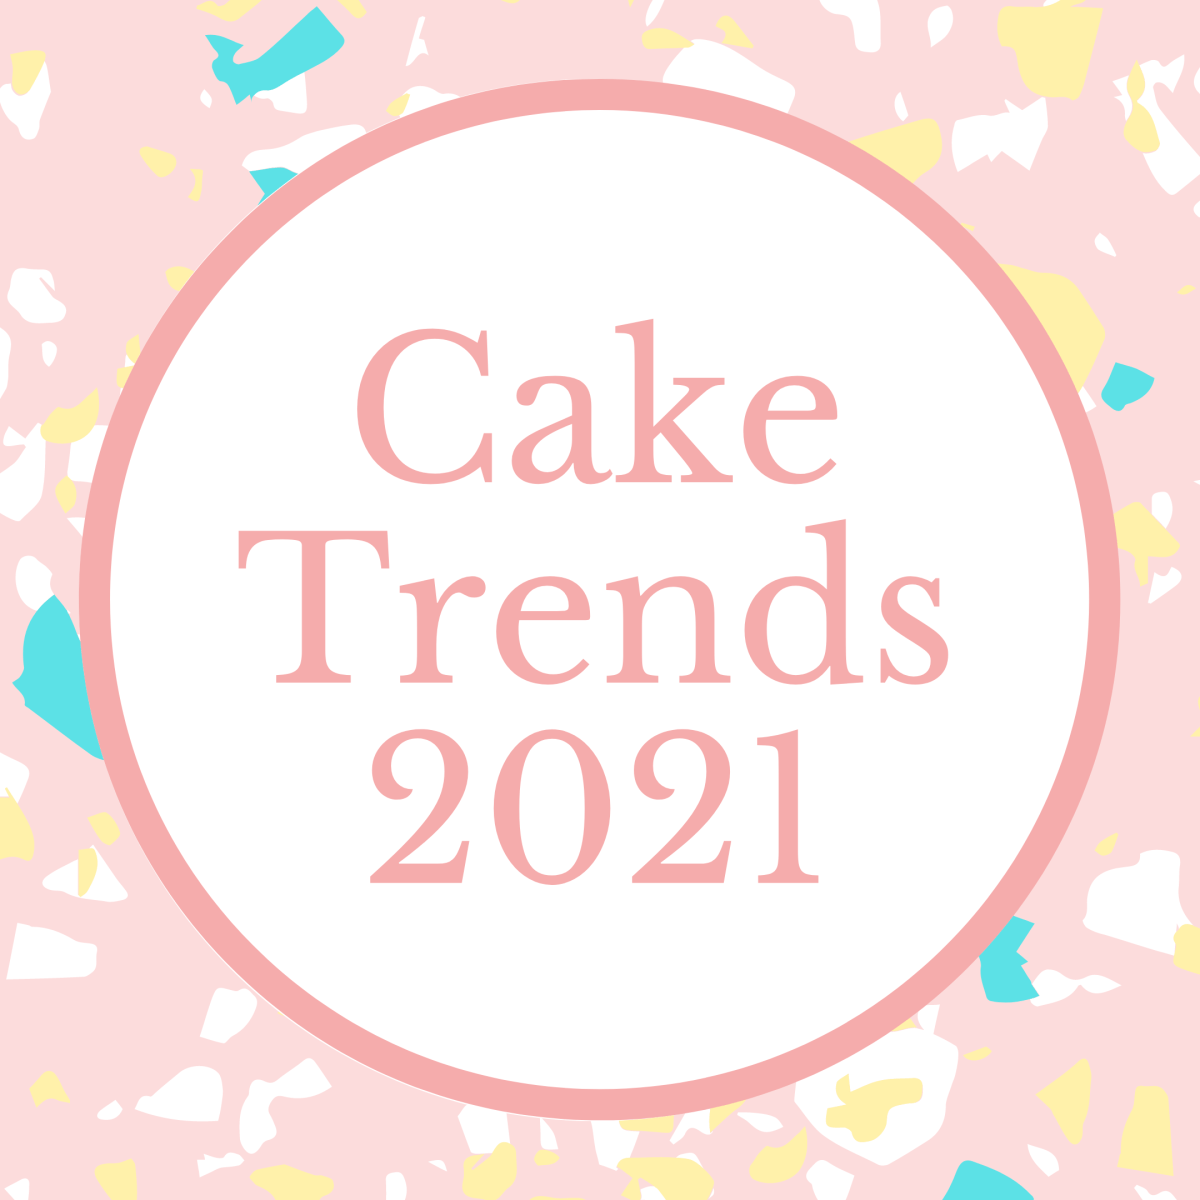 Cake Trends 2021